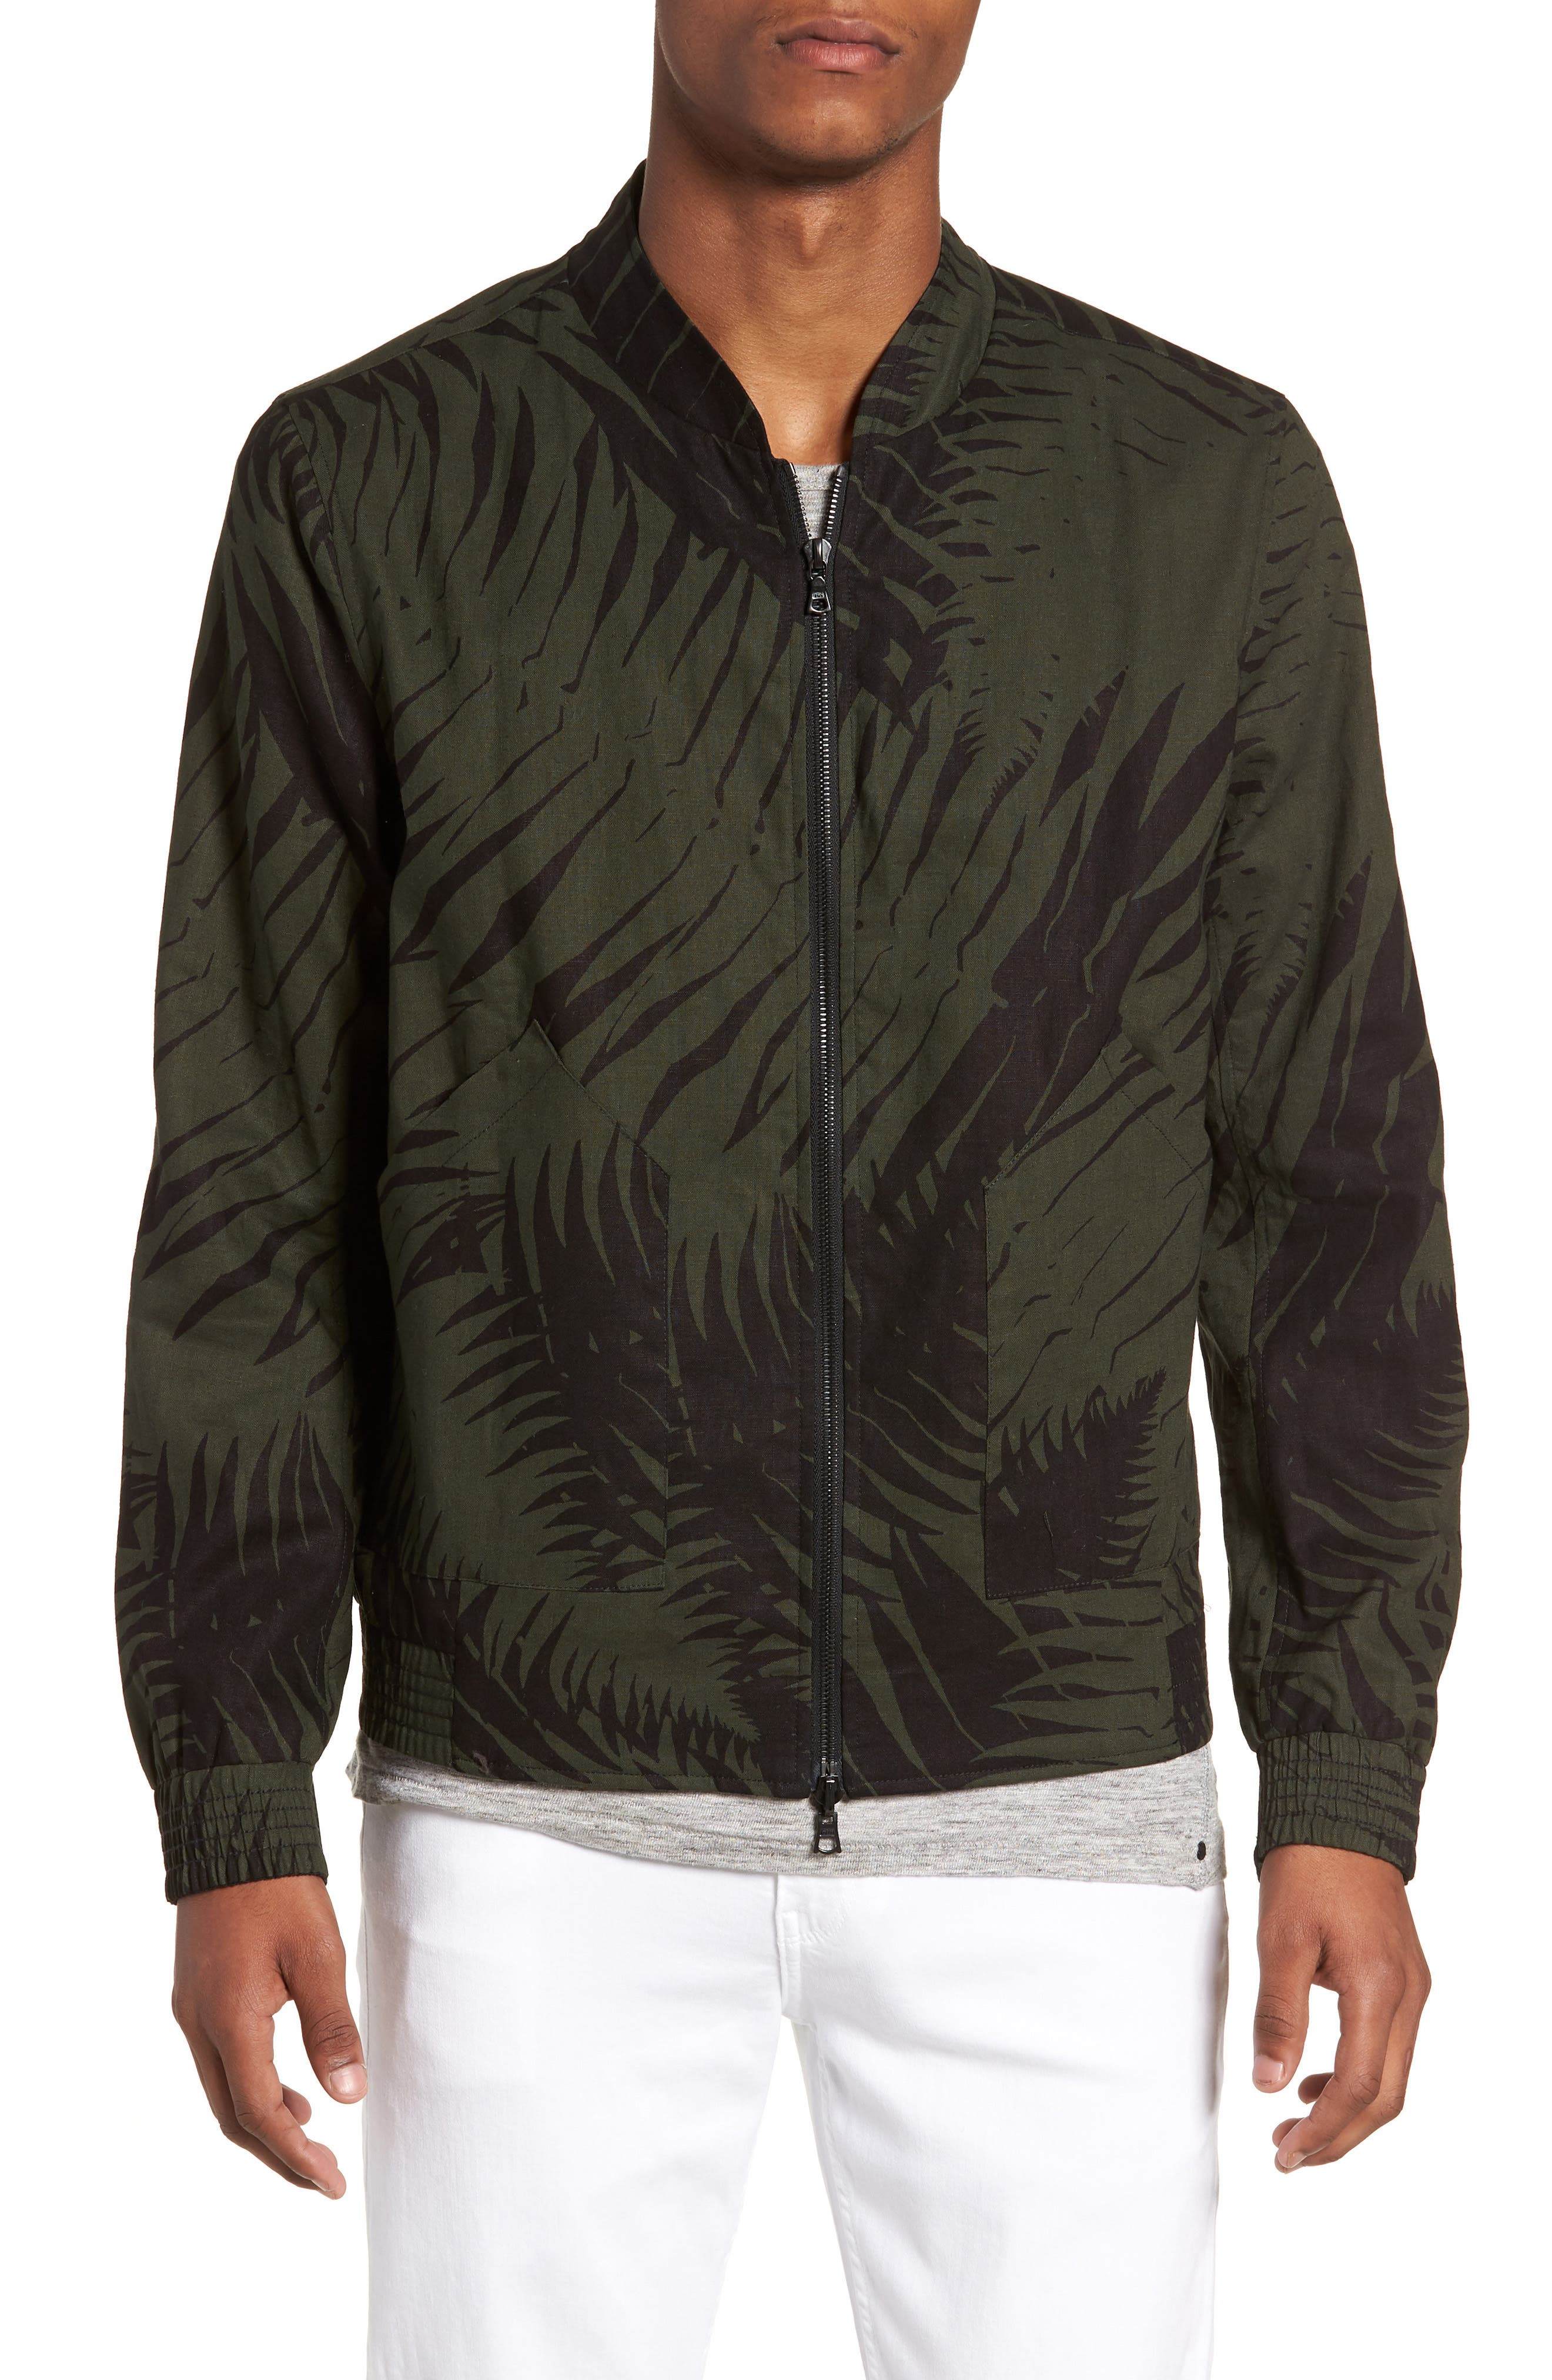 Reversible Bomber Jacket,                             Alternate thumbnail 2, color,                             Black/ Jungle Green